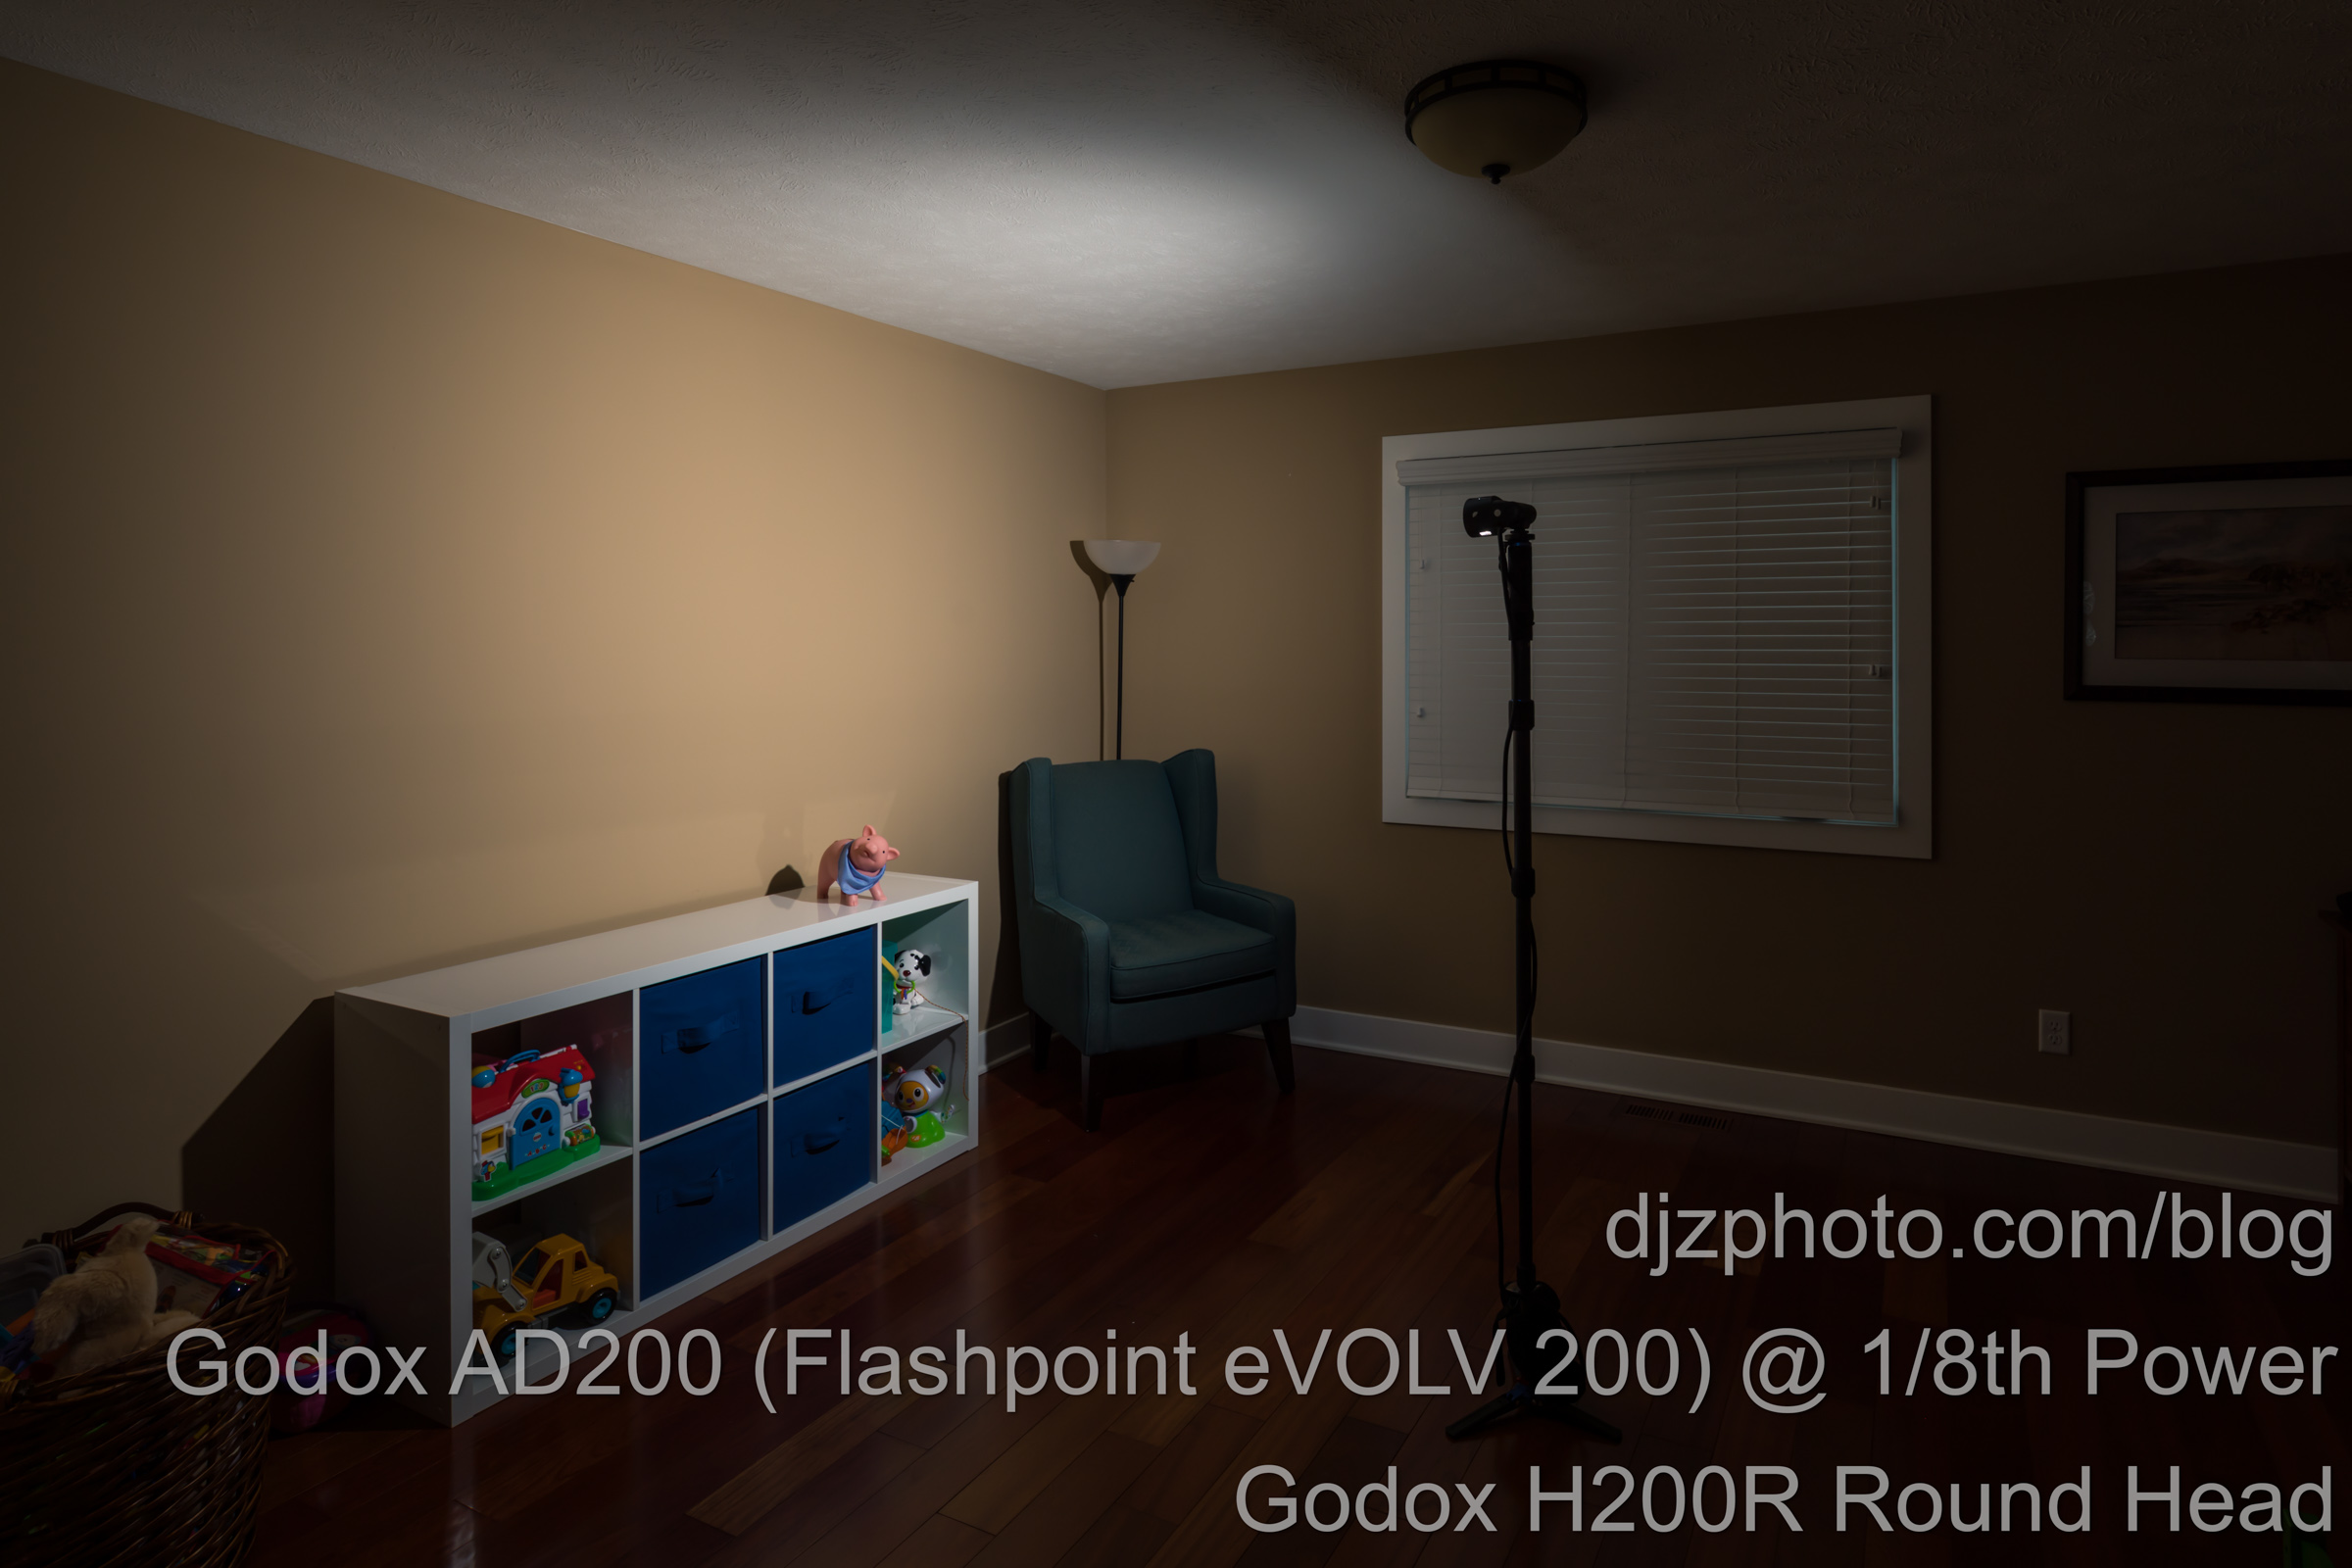 Godox AD200 with H200R Round Head